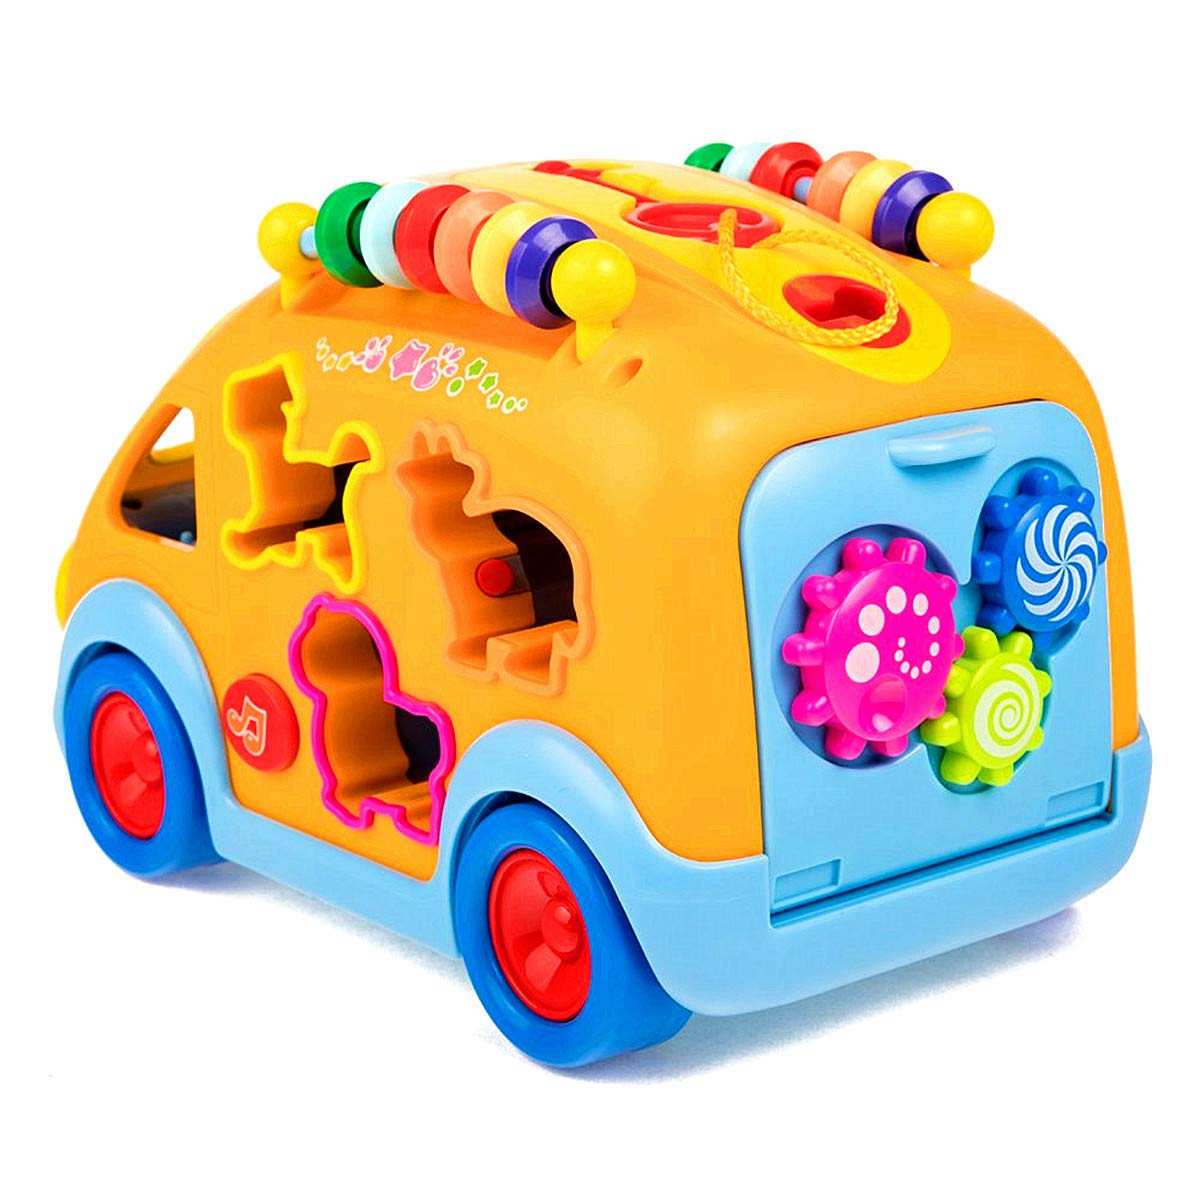 iPlay, iLearn Electronic Musical Bus, Baby Sensory Toy, 3D Animal Matching Car w/ Gear, Early Development, Learning, Educational Gift for 1, 2 Year Olds Girls Boys Toddlers Kids by iPlay, iLearn (Image #8)